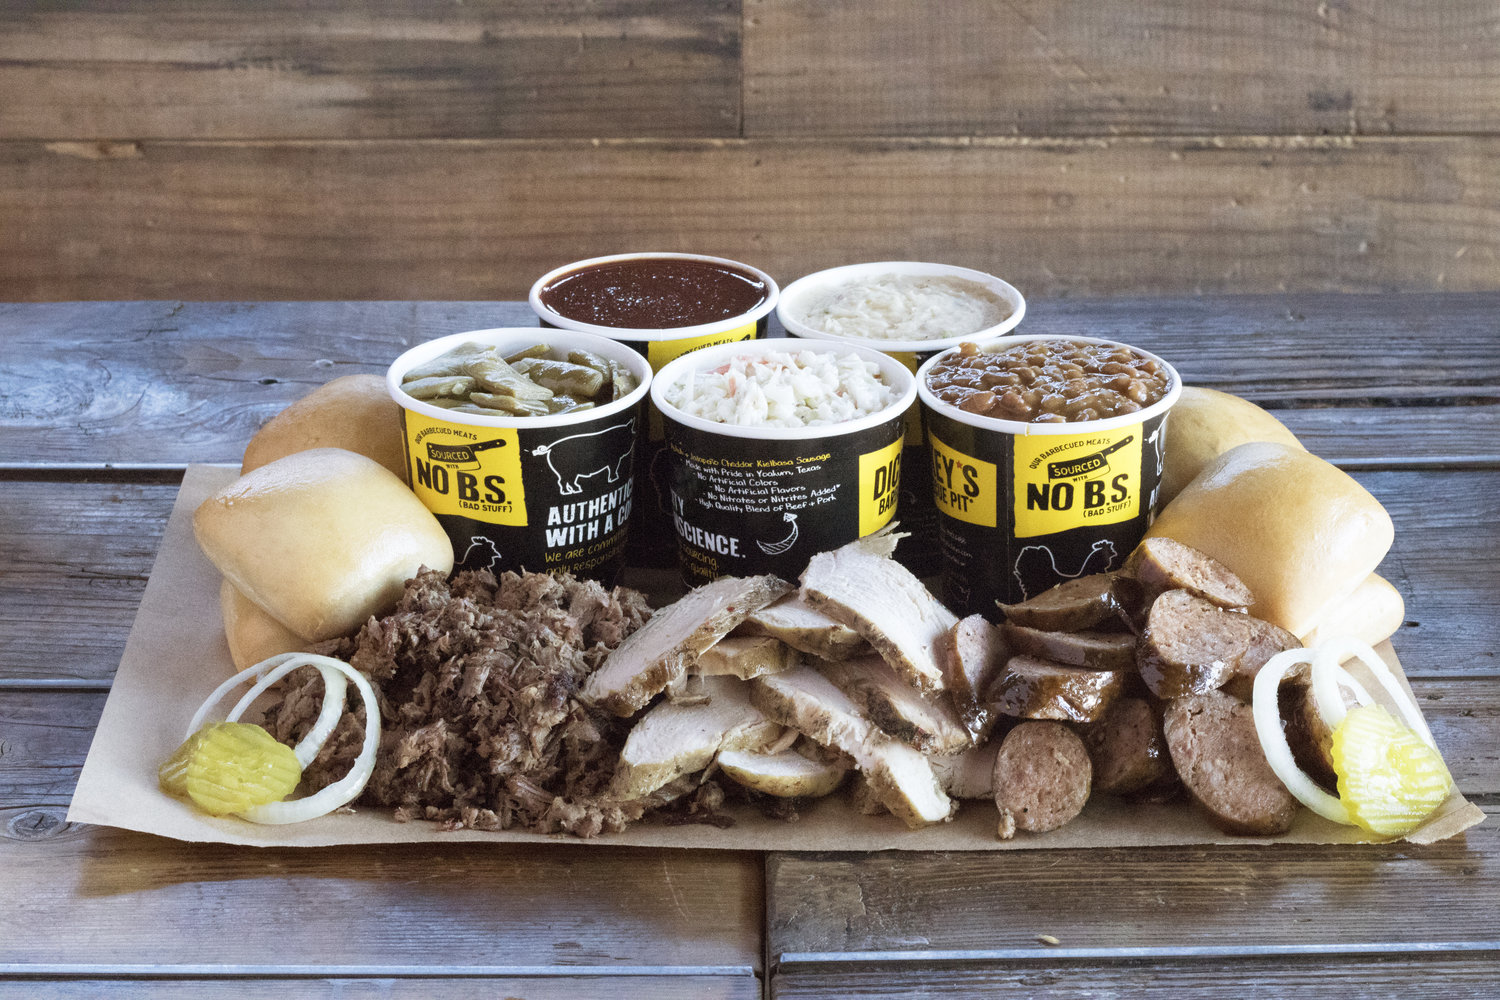 Newark Post: Dickey's Barbecue Pit opens in Glasgow